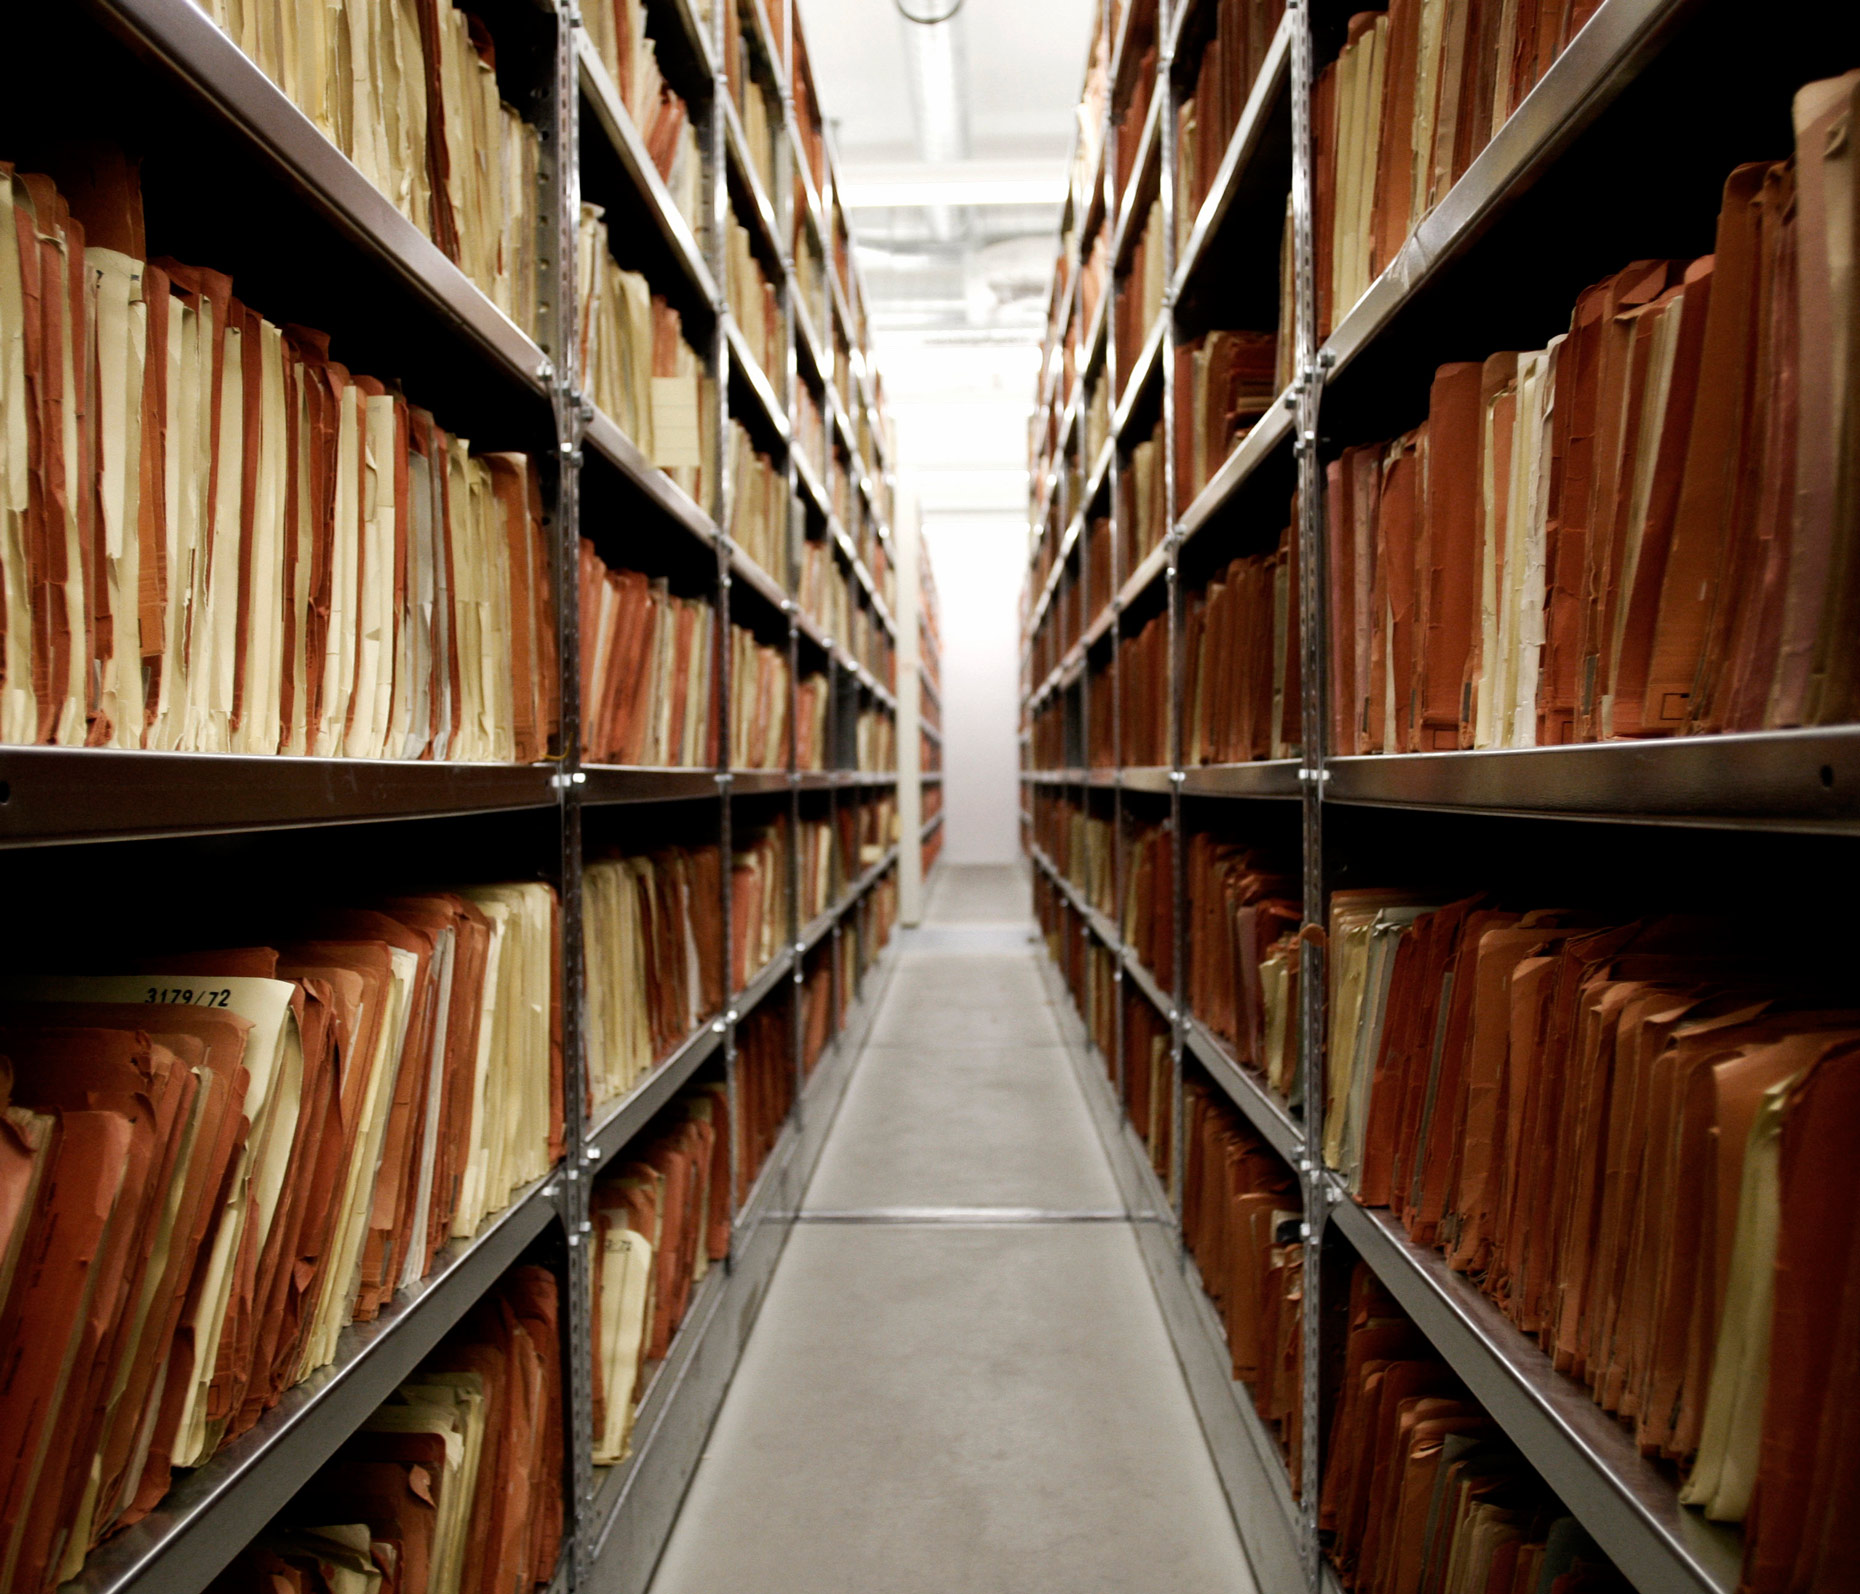 Archive of the Stasi (The GDR